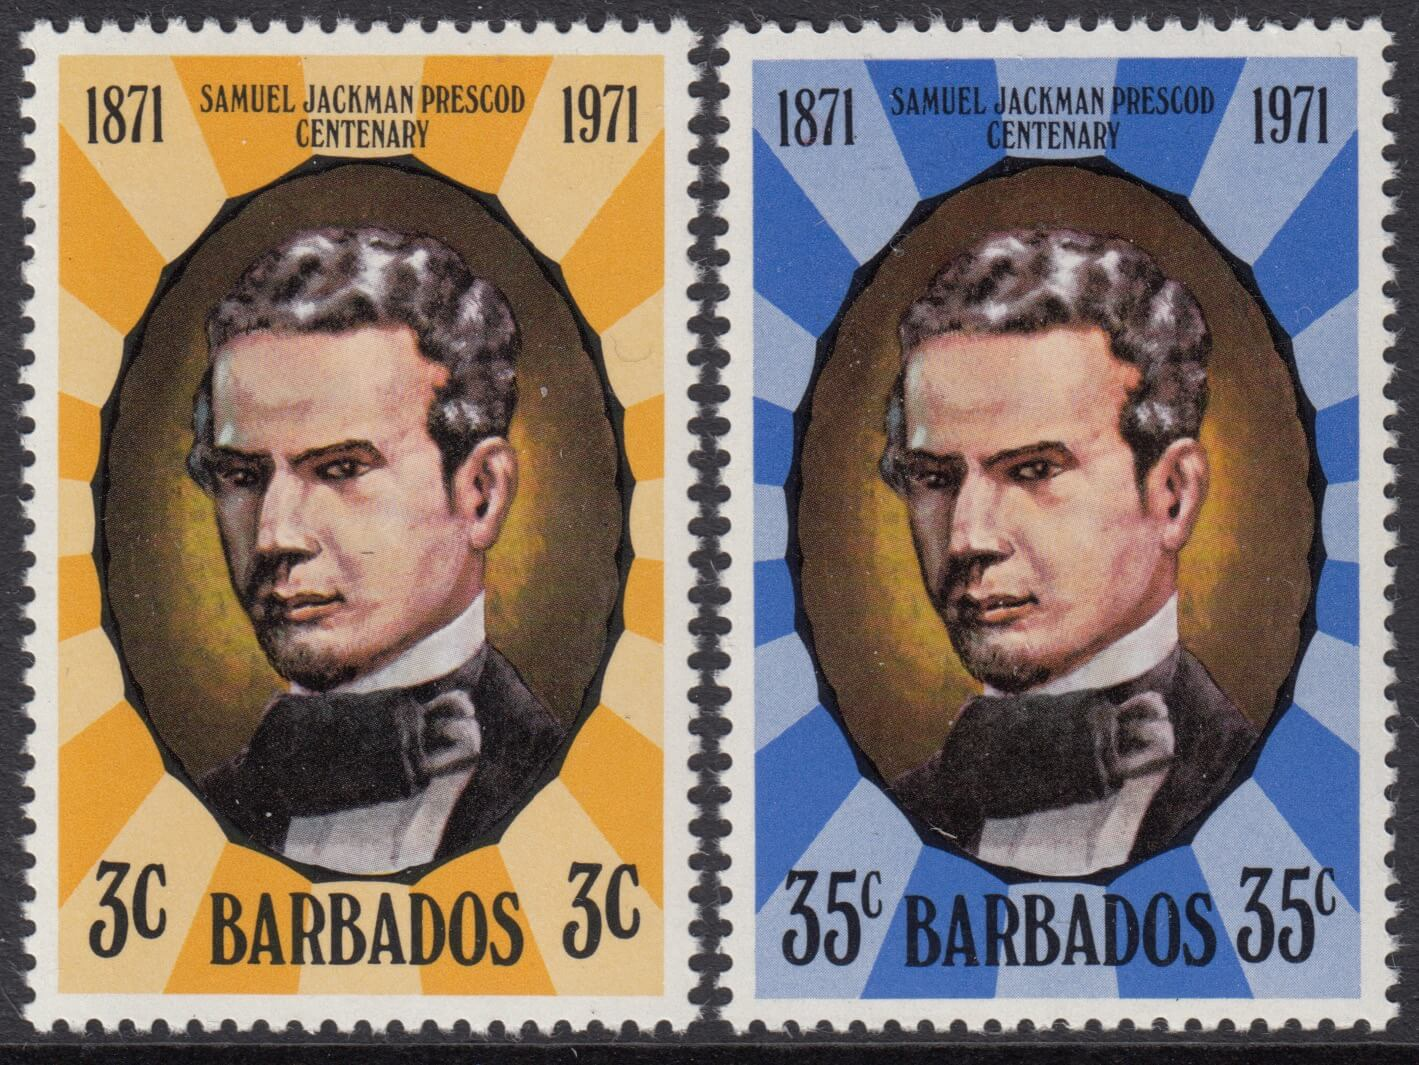 Barbados SG434-435 | Death Centenary of Samuel Jackman Prescod